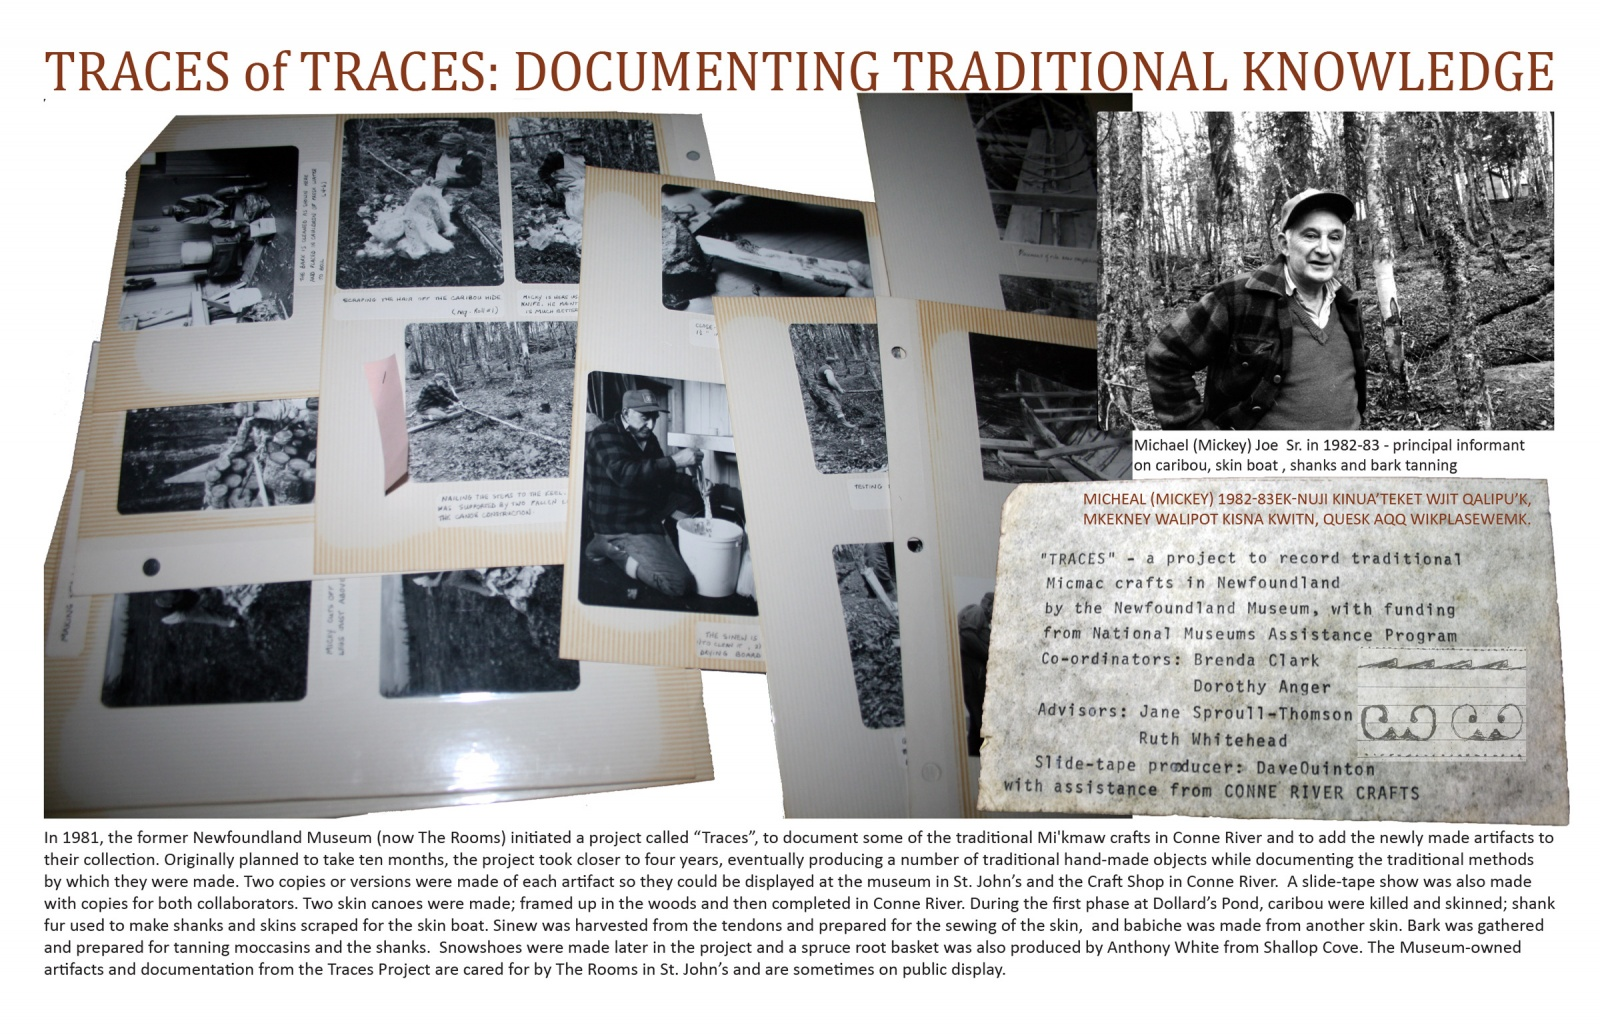 Traces of Traces: Documenting Traditional Knowledge